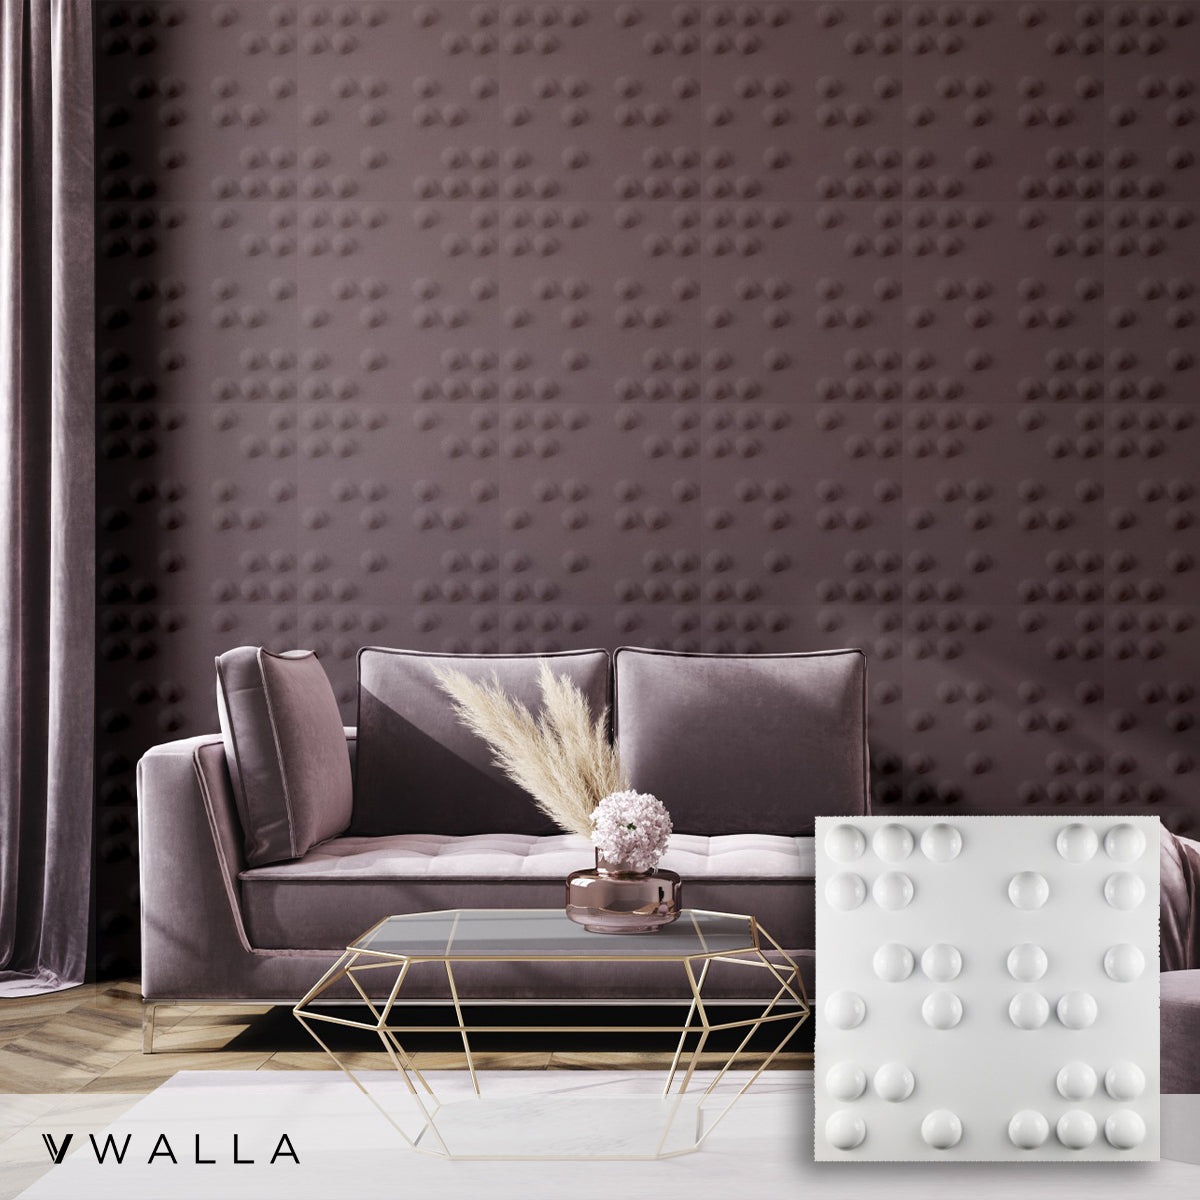 3D Wall Panel - Braille